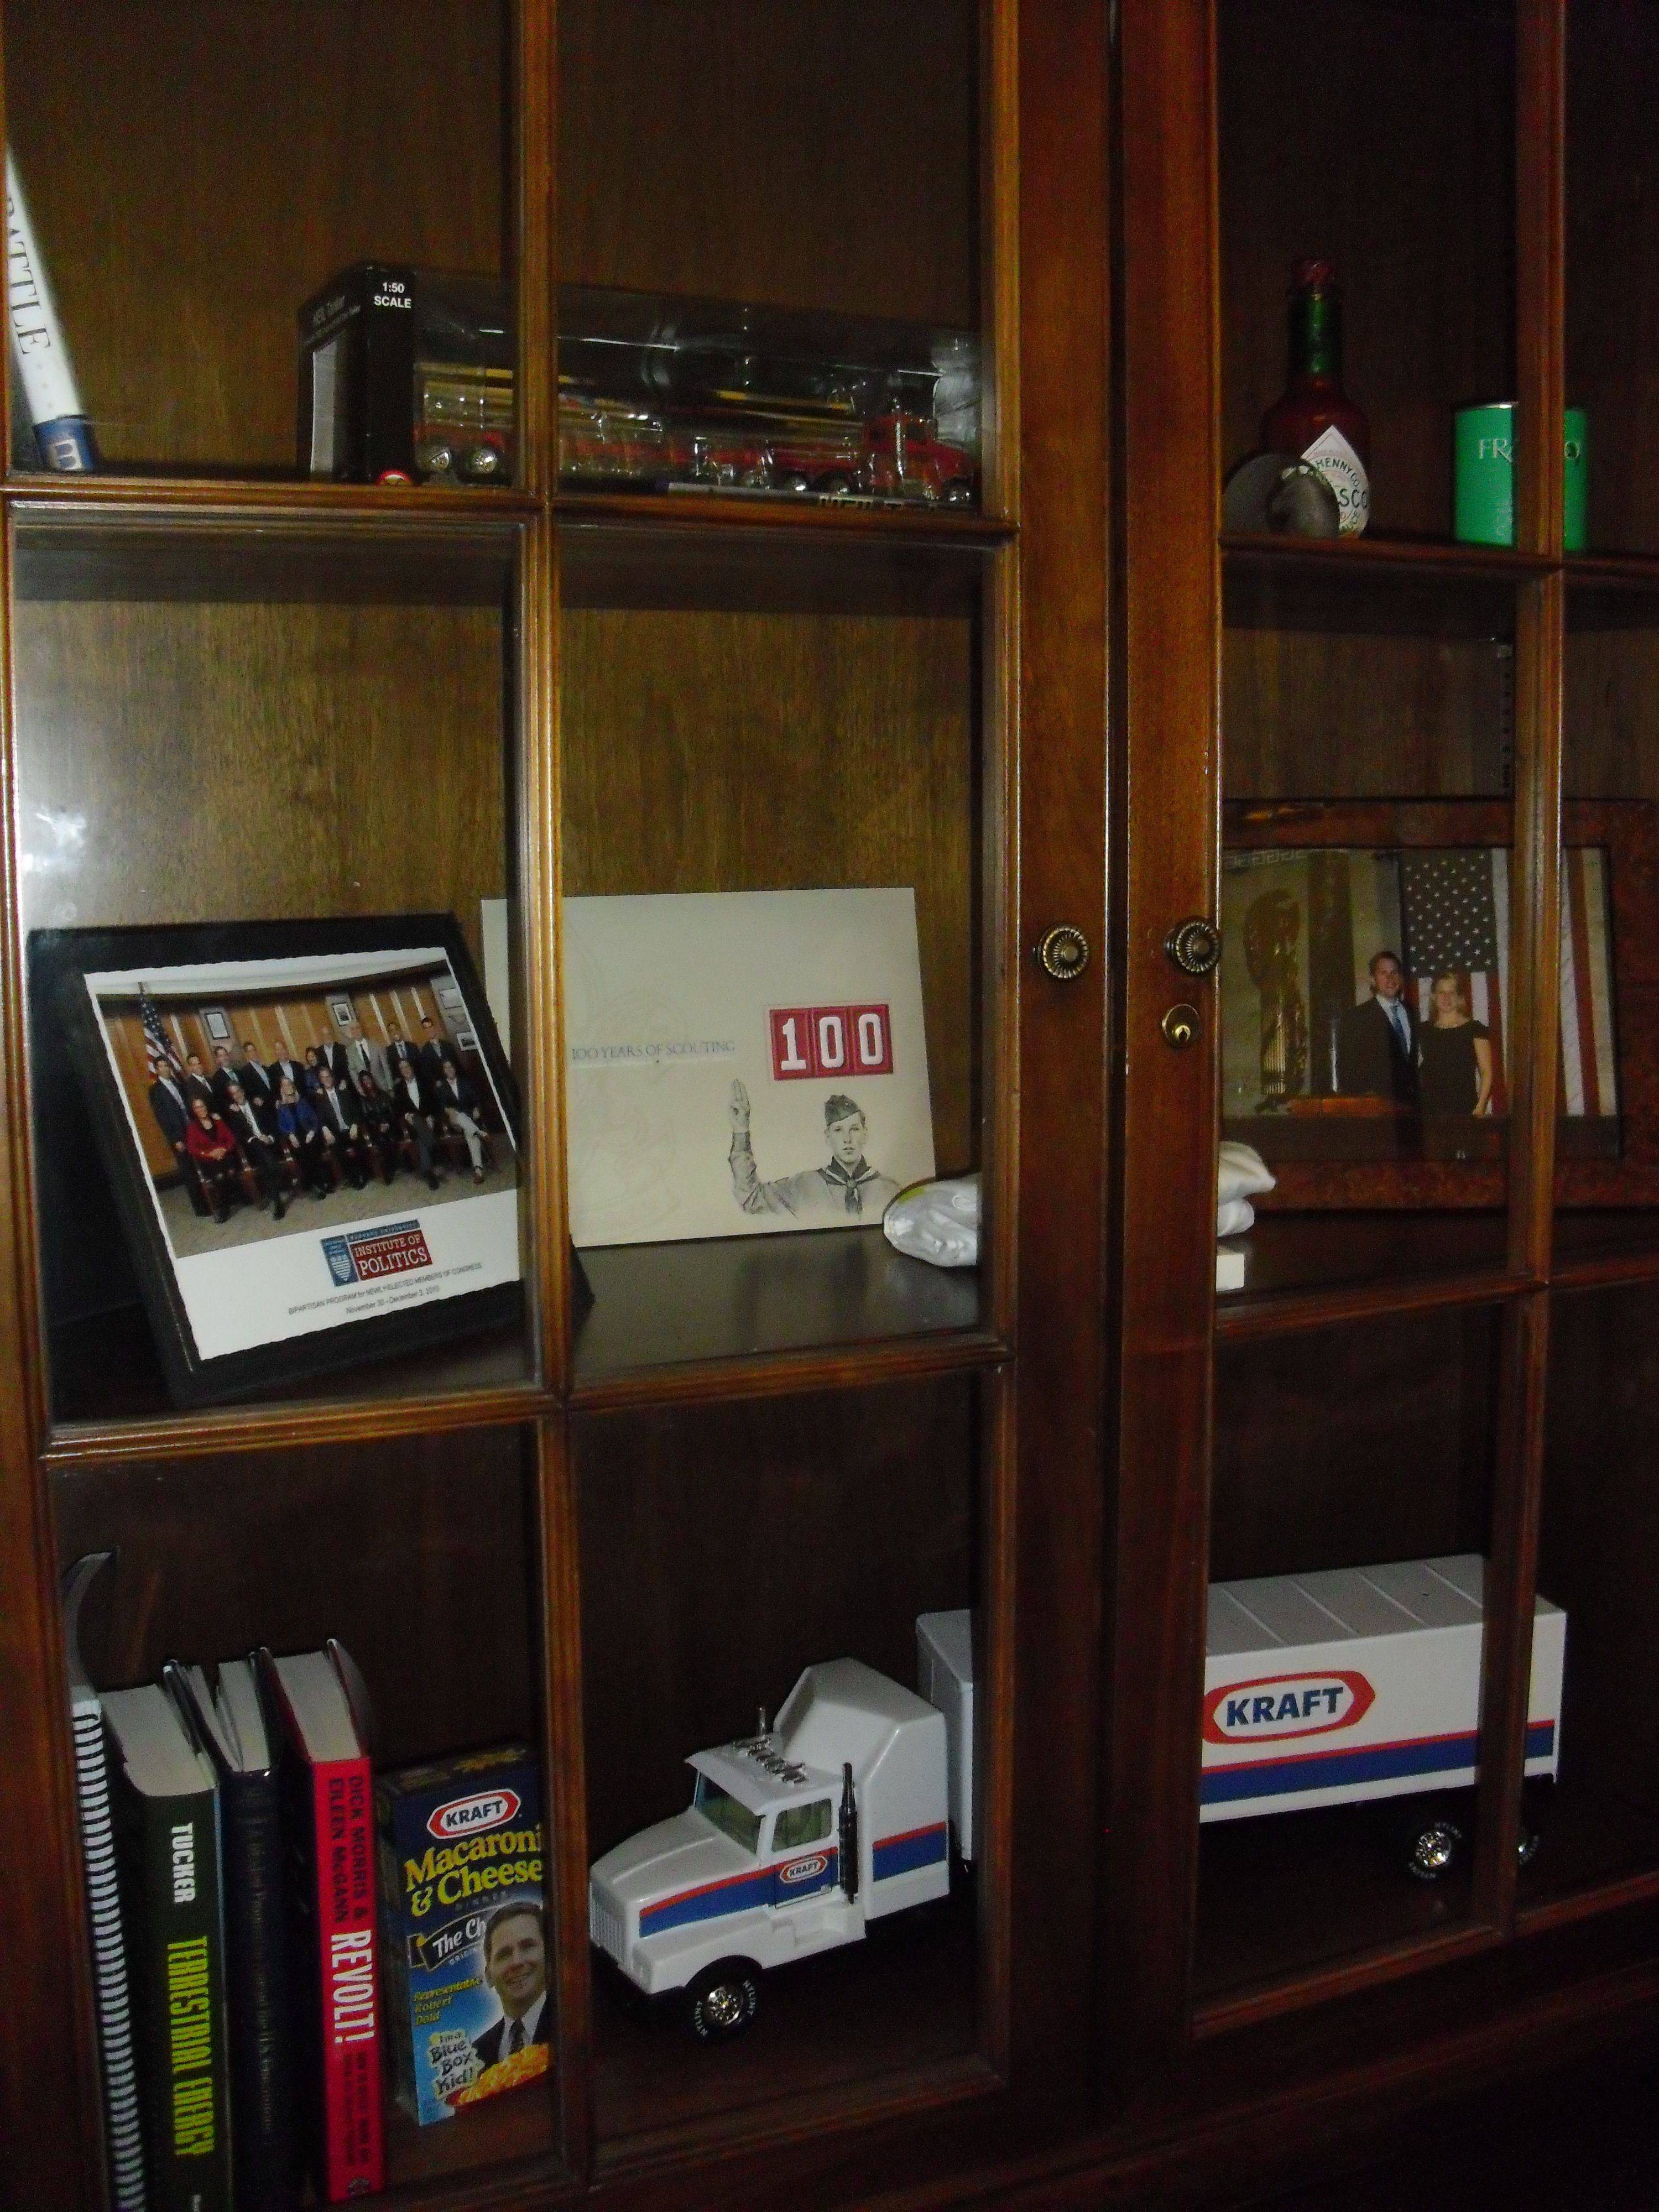 U.S. Rep. Robert Dold's office cabinet contains items including a toy truck from Kraft, some macaroni and cheese and books.